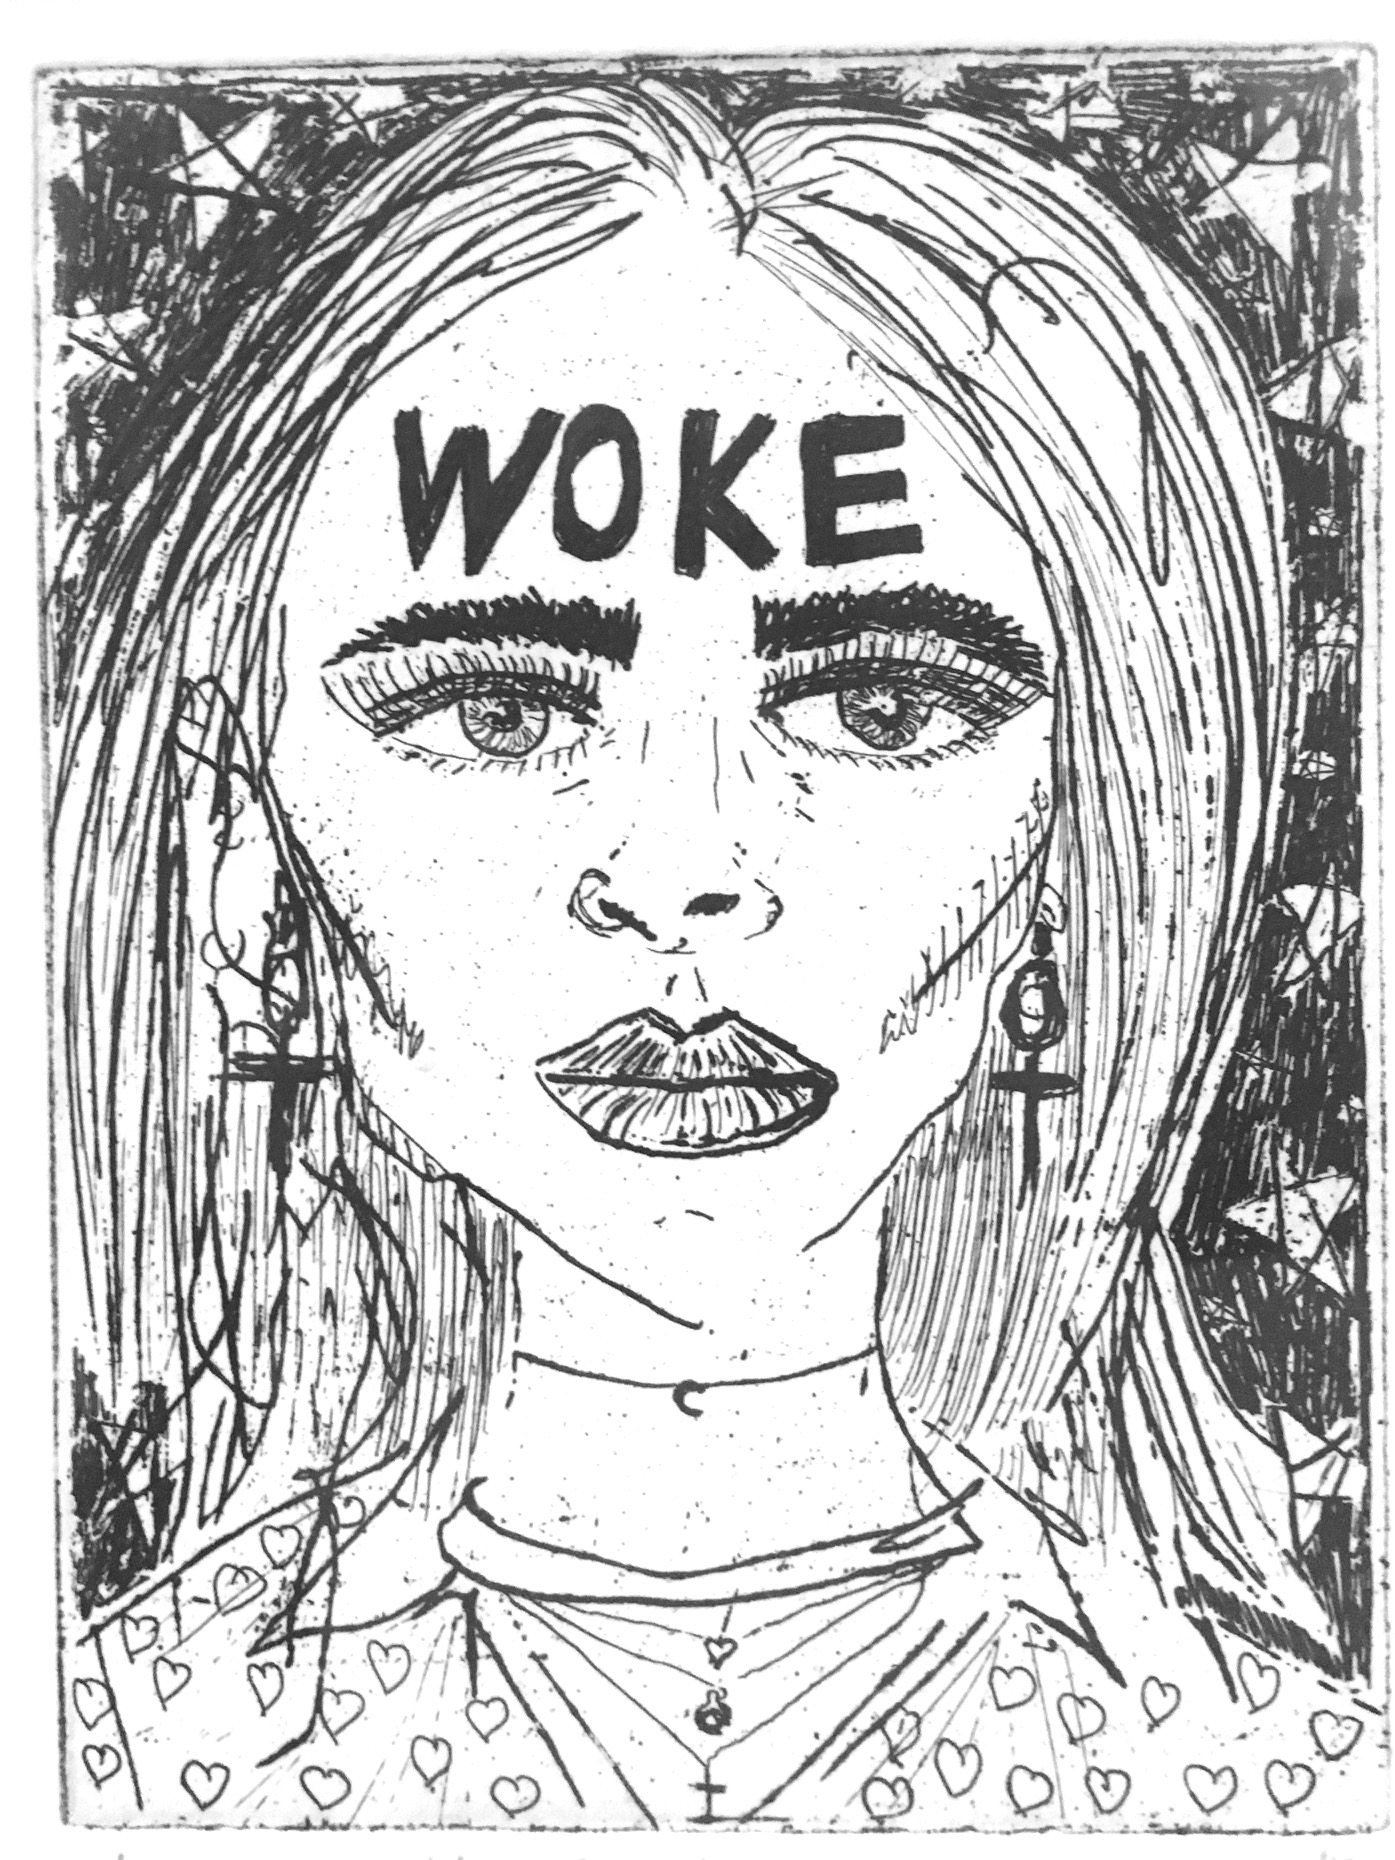 """A drawing by Anna Olafsson of a woman with long hair looking straight ahead. She has the word """"woke"""" in black all-caps on her forehead and is wearing dangly earrings in the shape of the Venus symbol. Behind her is a black background with large stars."""